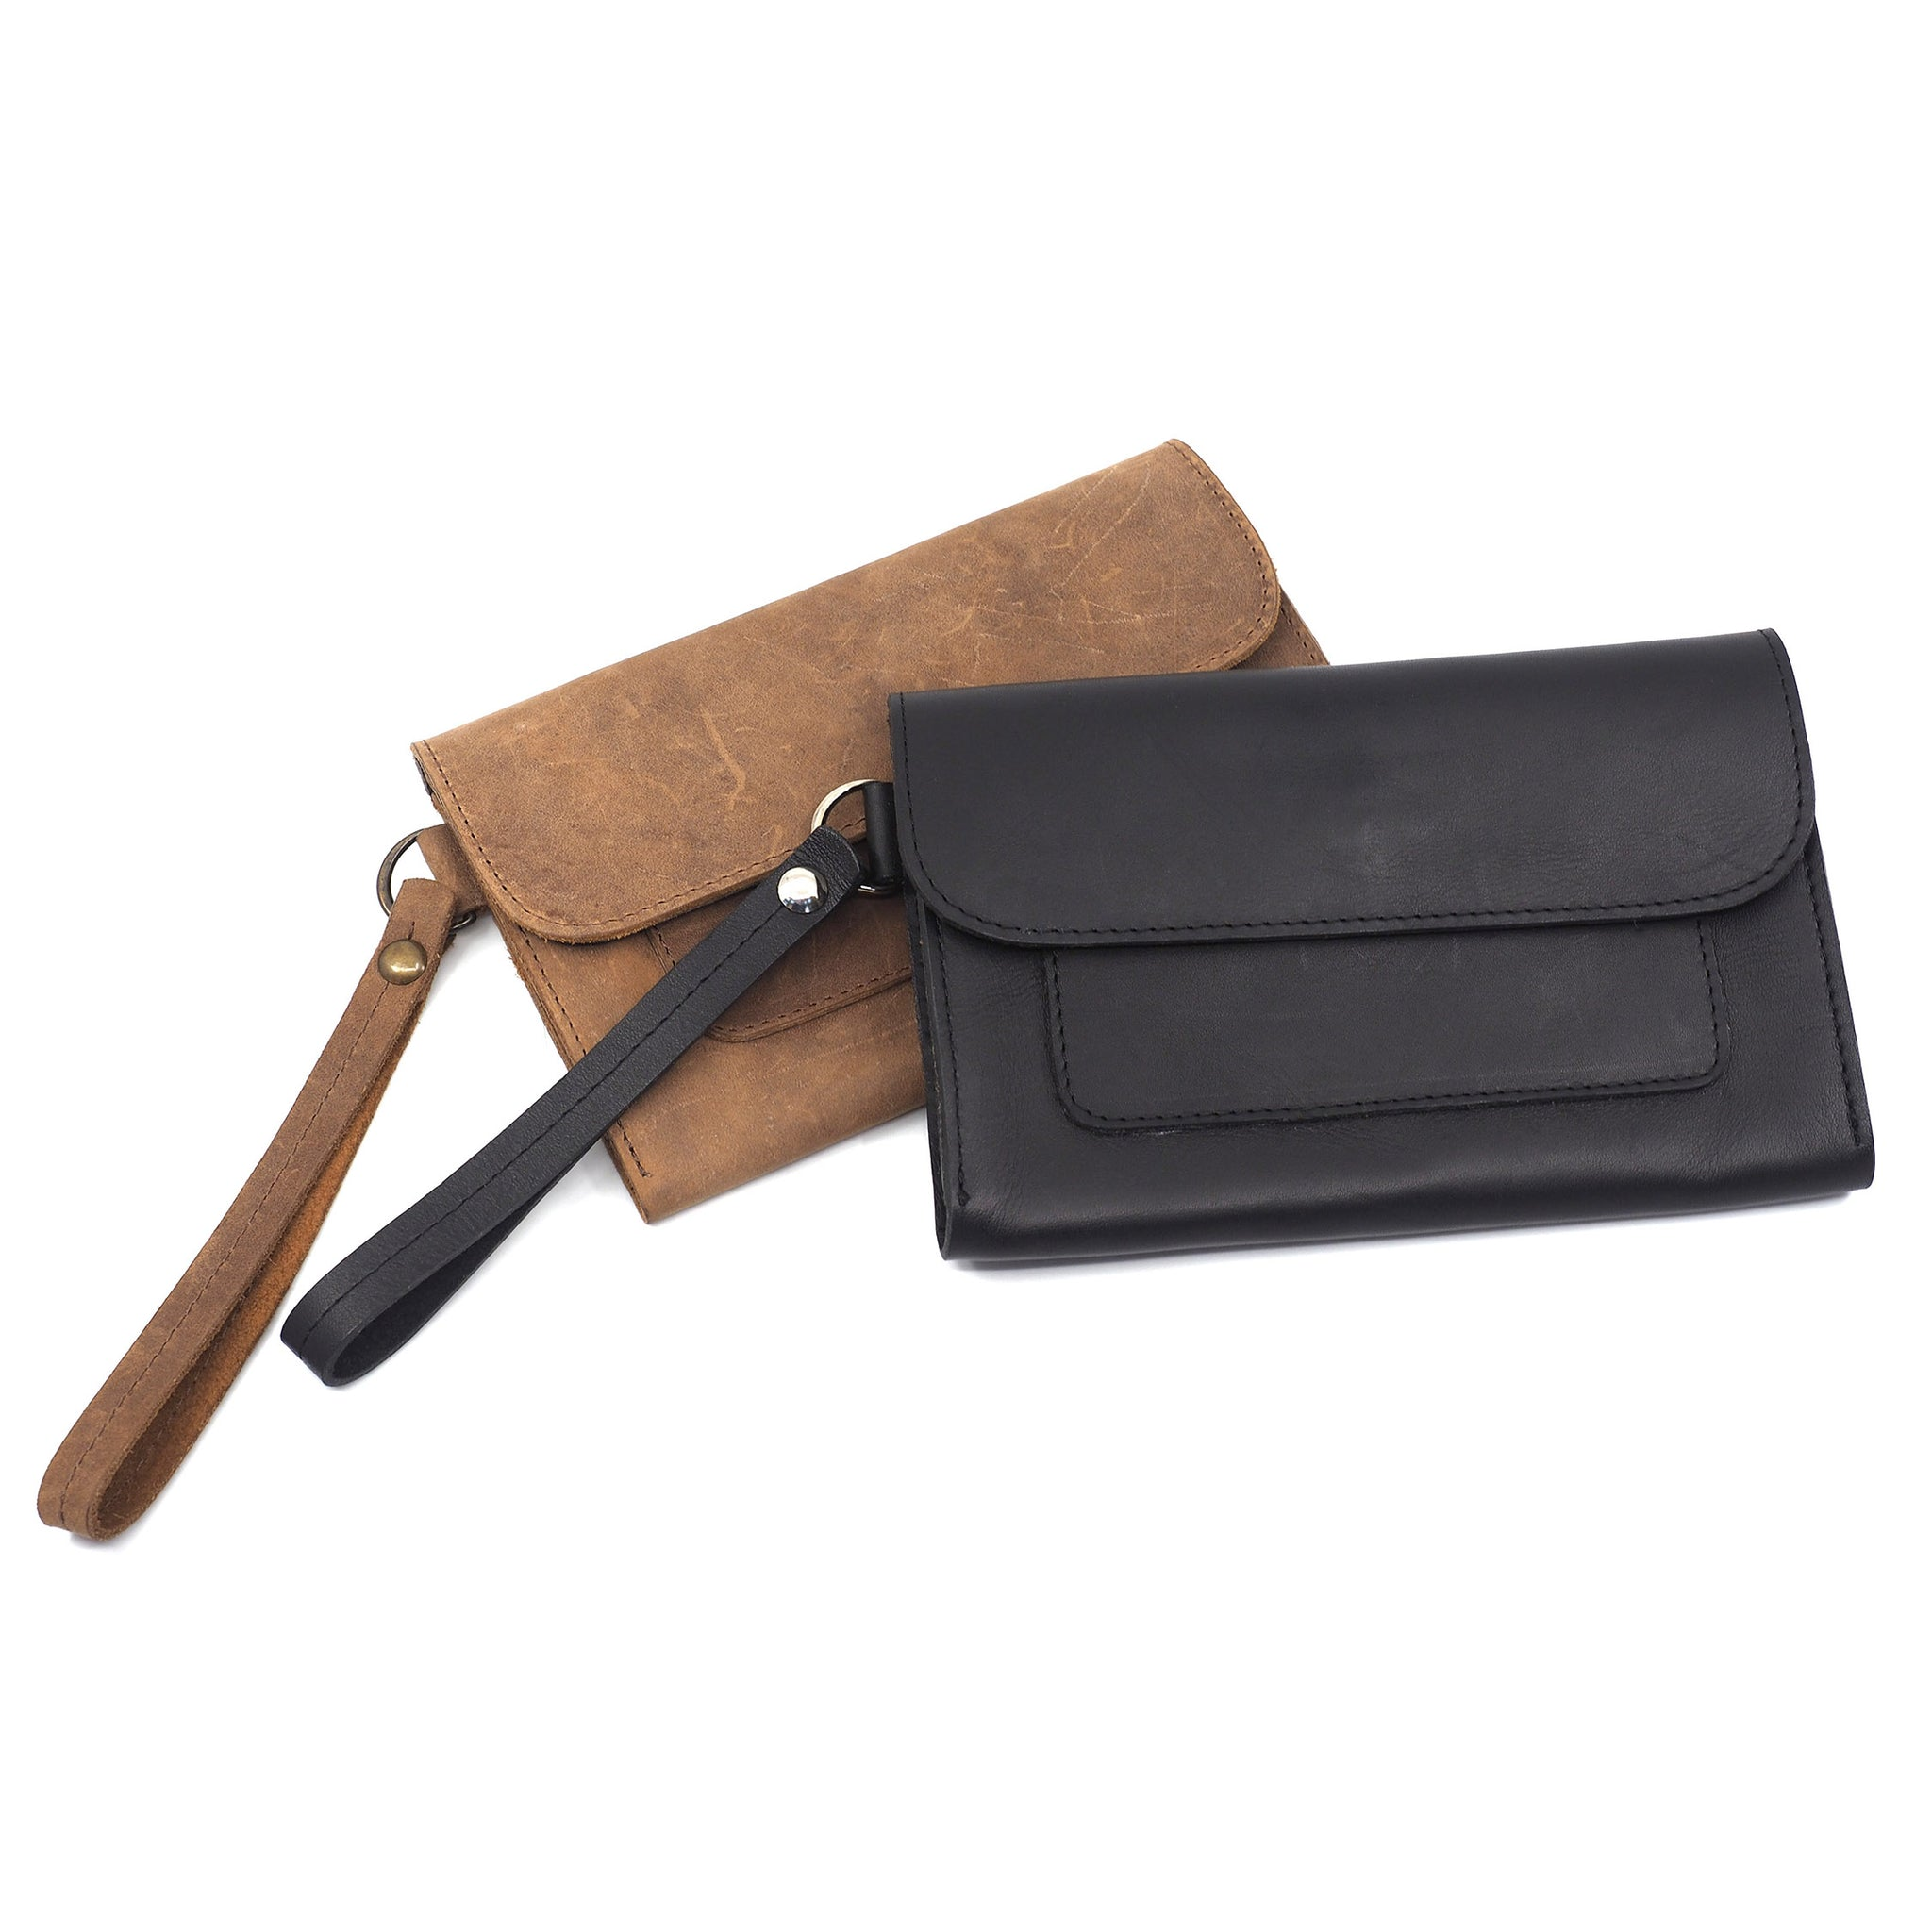 About Town Wallet